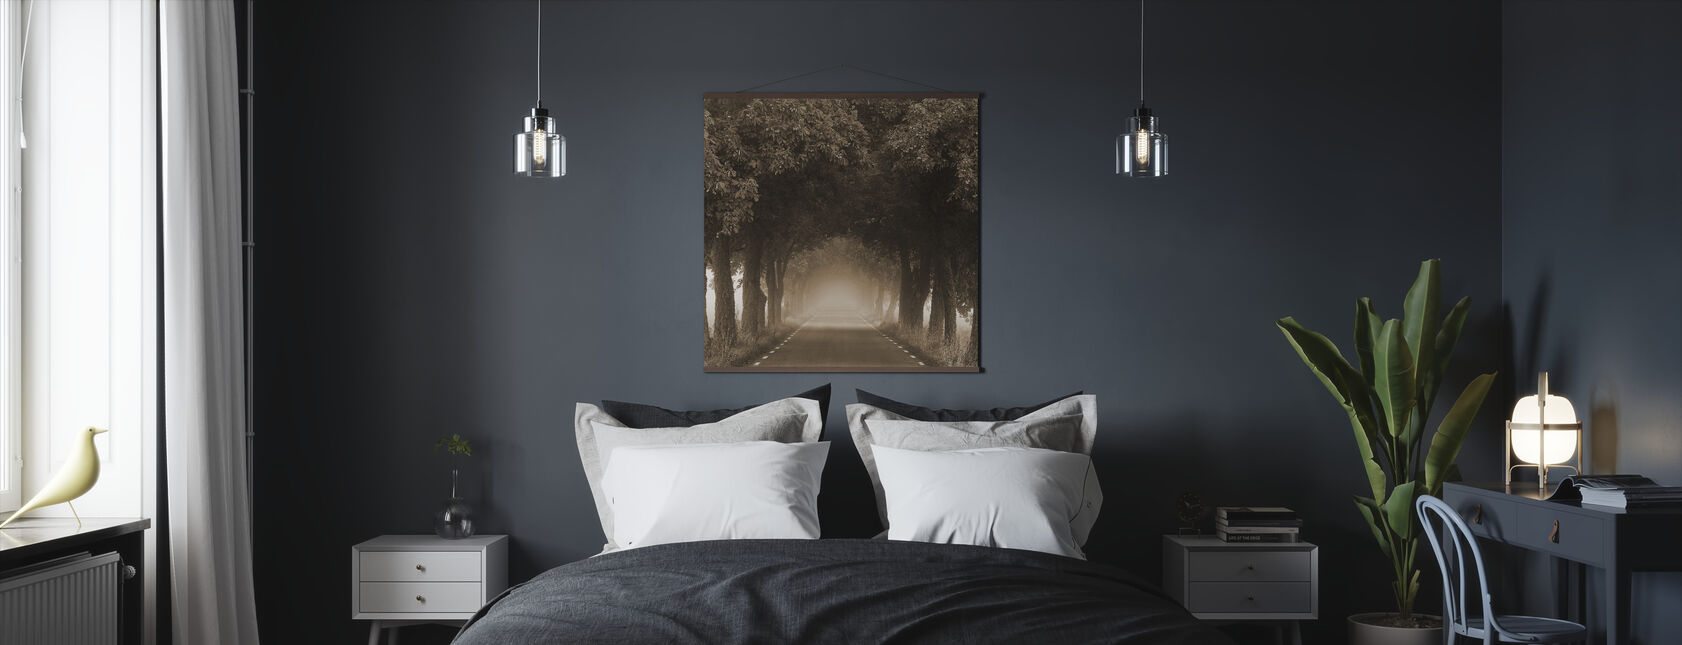 Misty Avenue - Poster - Bedroom